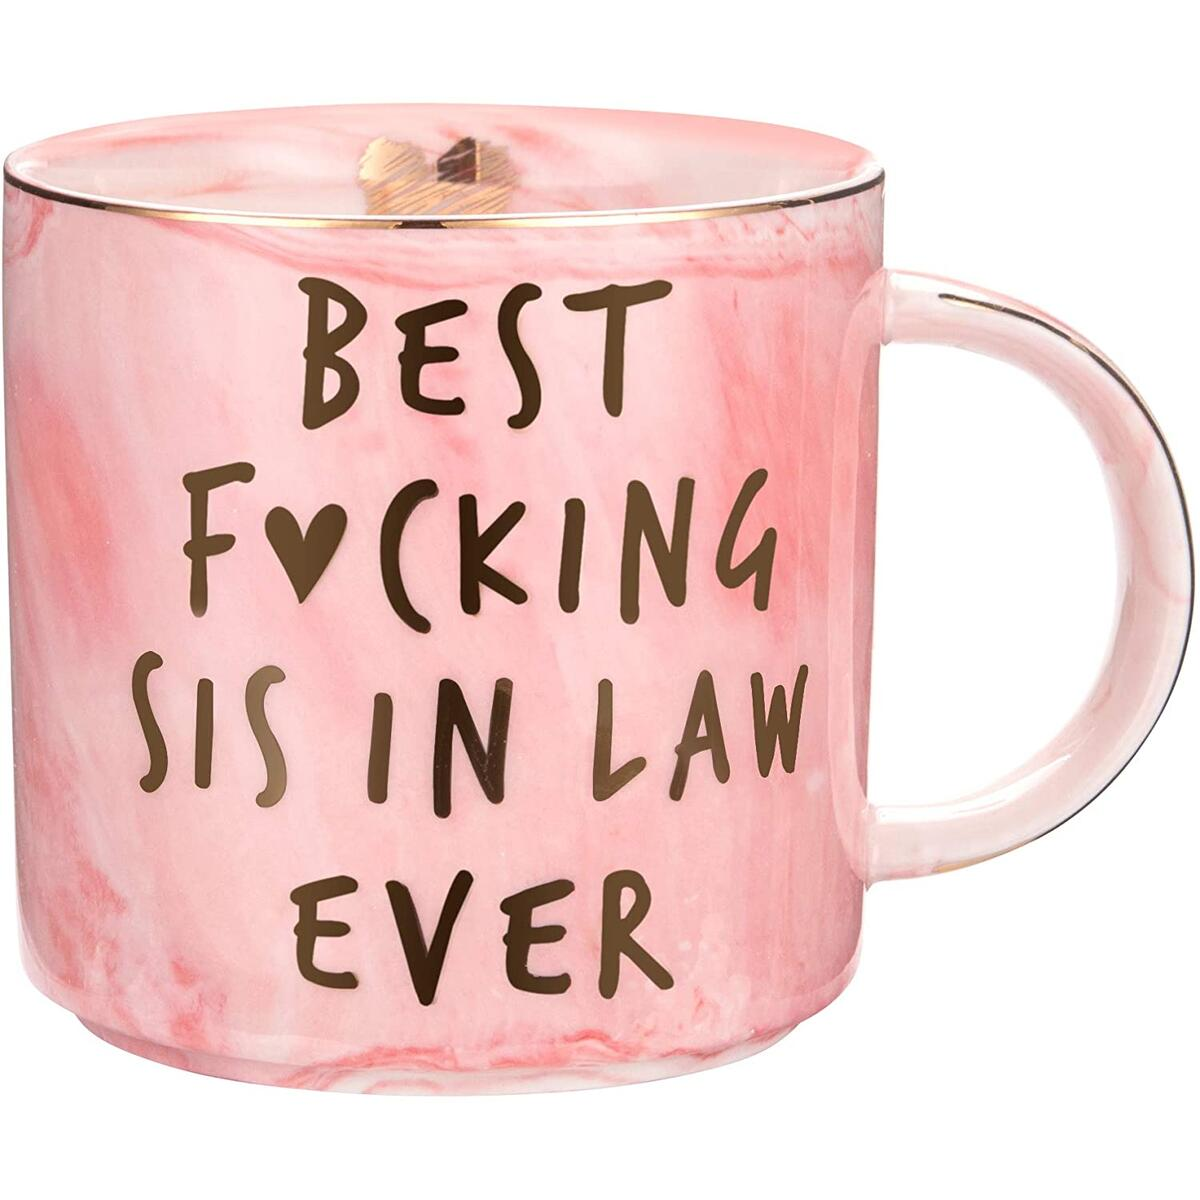 Sister In Law Gifts - Best Sis In Law Ever - Funny Sister In Law Birthday Gift, Sister In Law Engagement, Wedding Gift, New Sister In Law, Sister In Law To Be - Pink Marble Mug, 11.5oz Coffee Cup